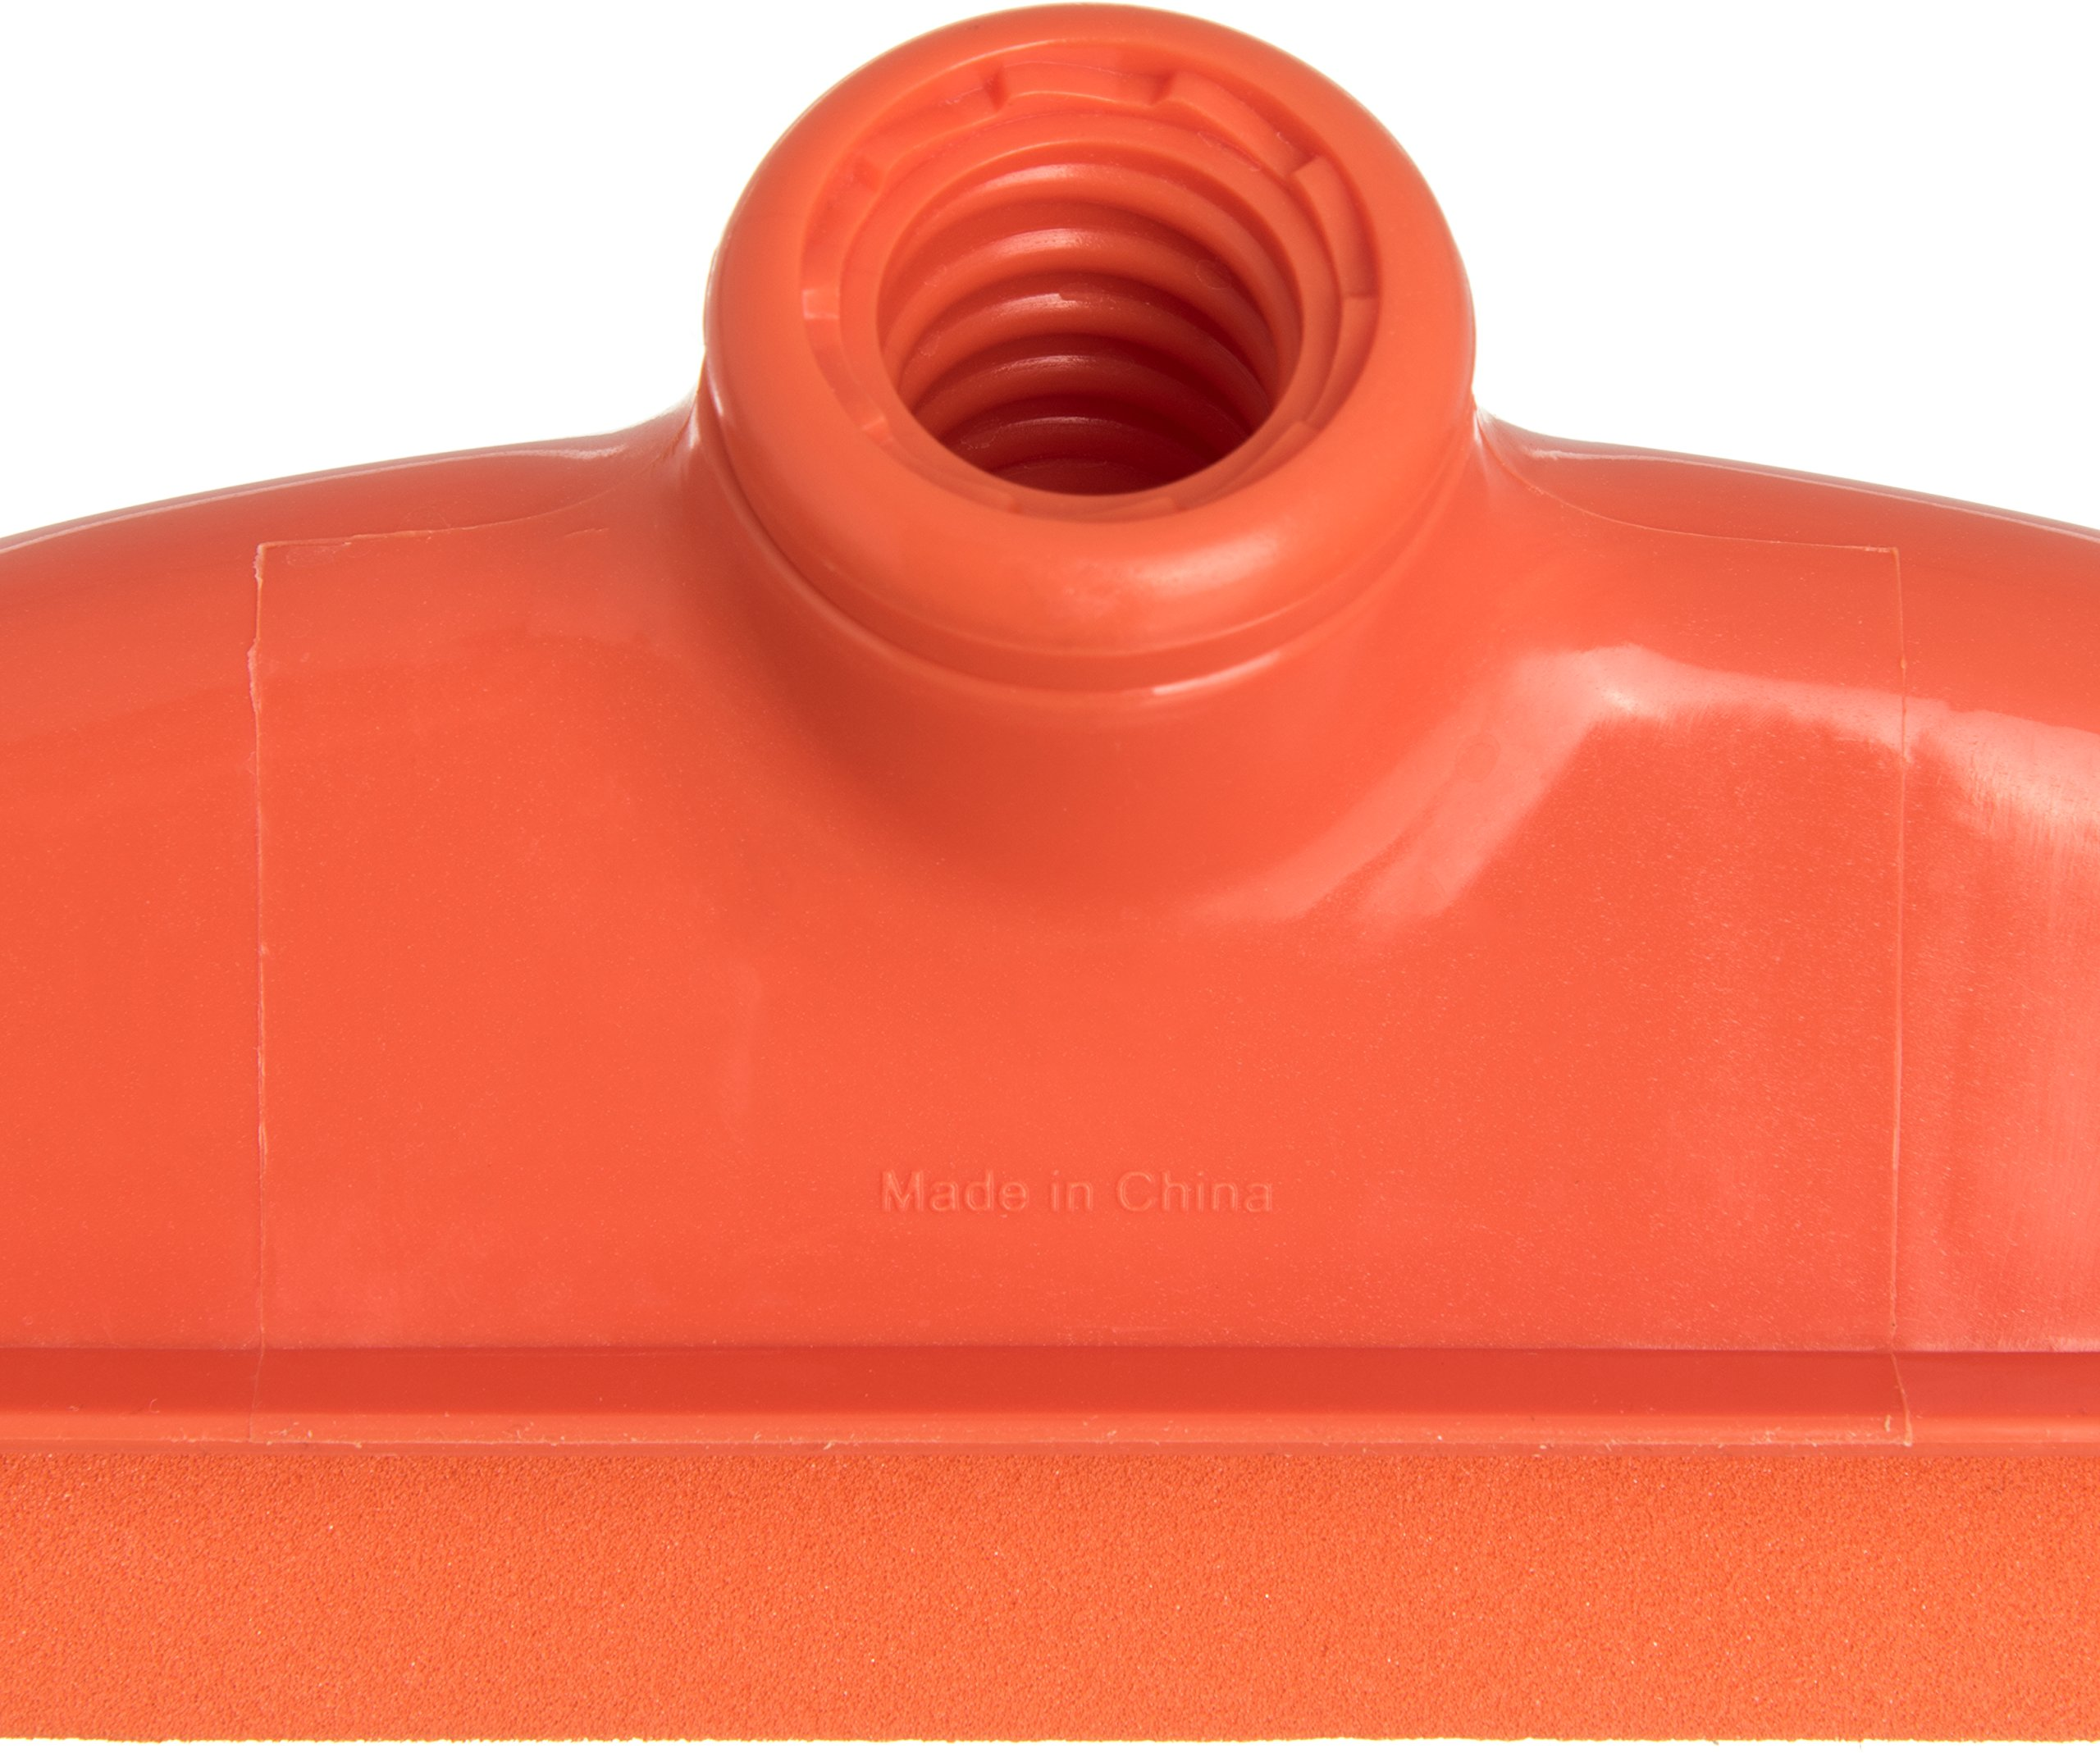 Carlisle 4156824 Spectrum Double Foam Rubber Floor Squeegee with Plastic Frame, 24'' Length, Orange by Carlisle (Image #5)